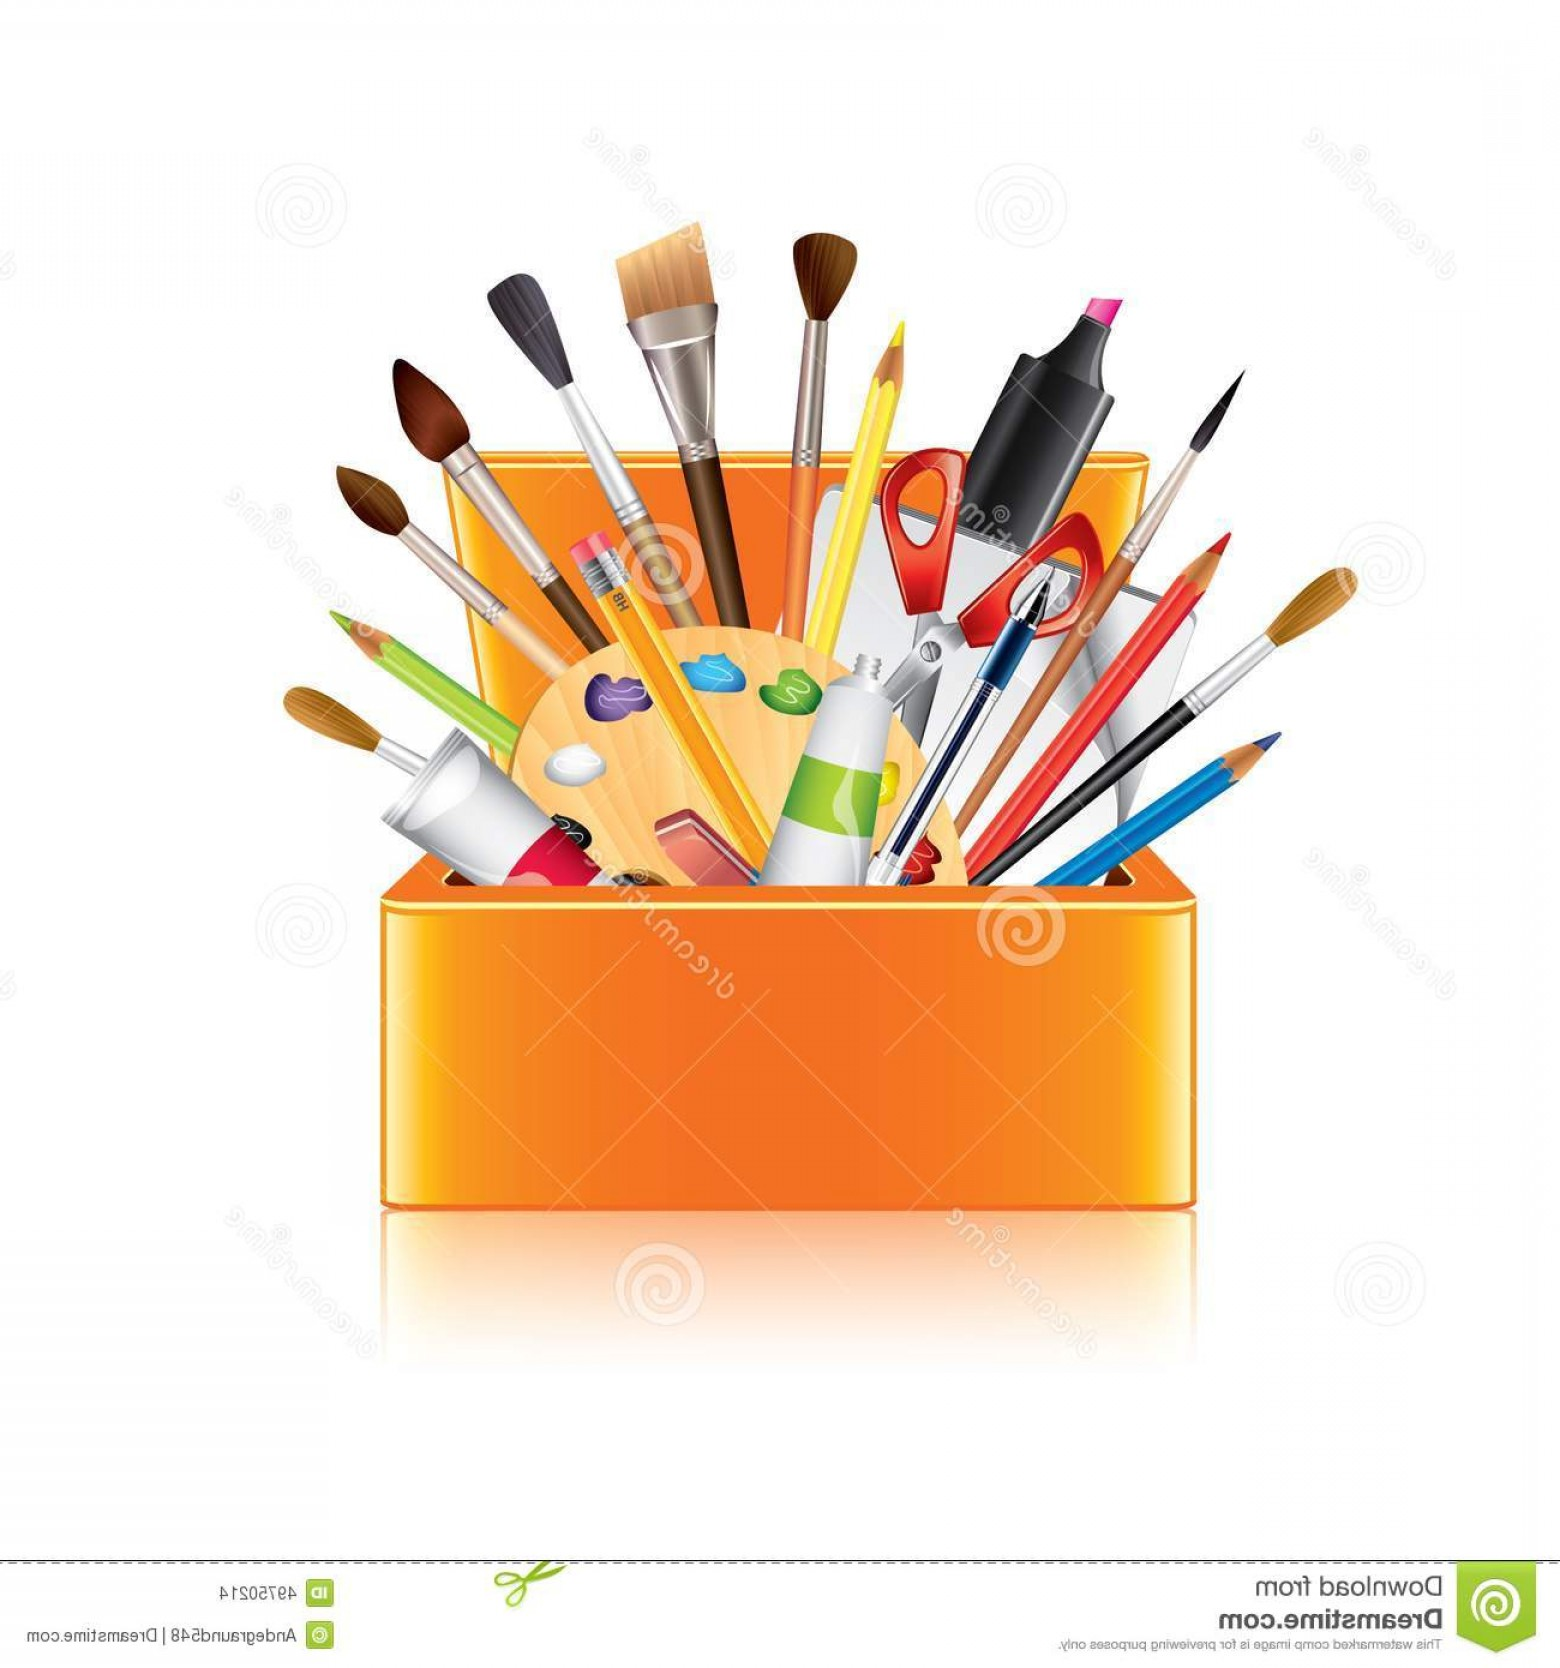 Supplies Vector Graphic: Stock Illustration Art Supplies Box White Vector Photo Realistic Illustration Image